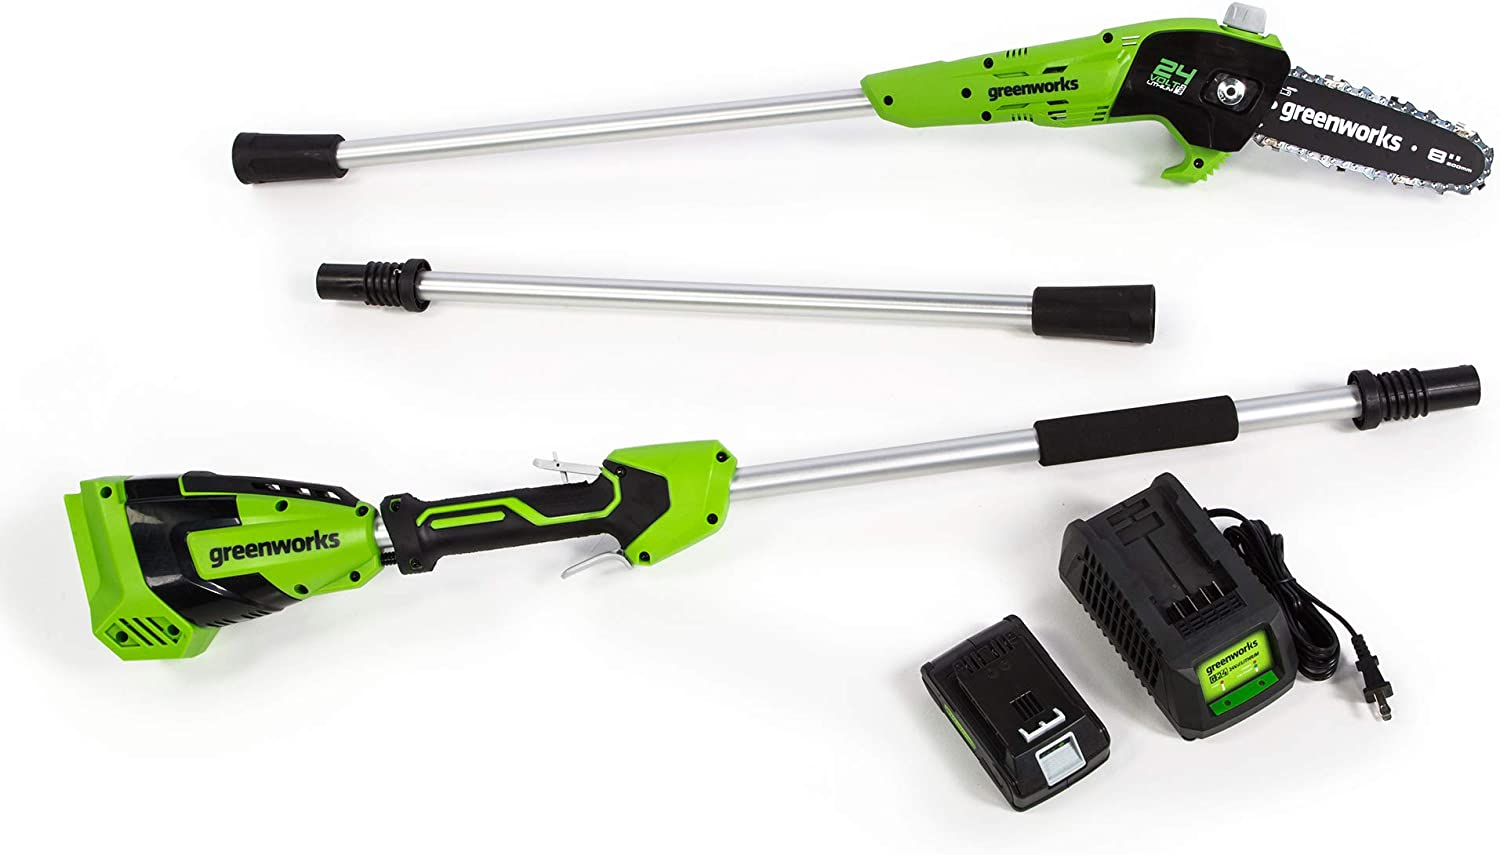 Greenworks PS24B210 8-Inch 24V Cordless Pole Saw, 2Ah Battery